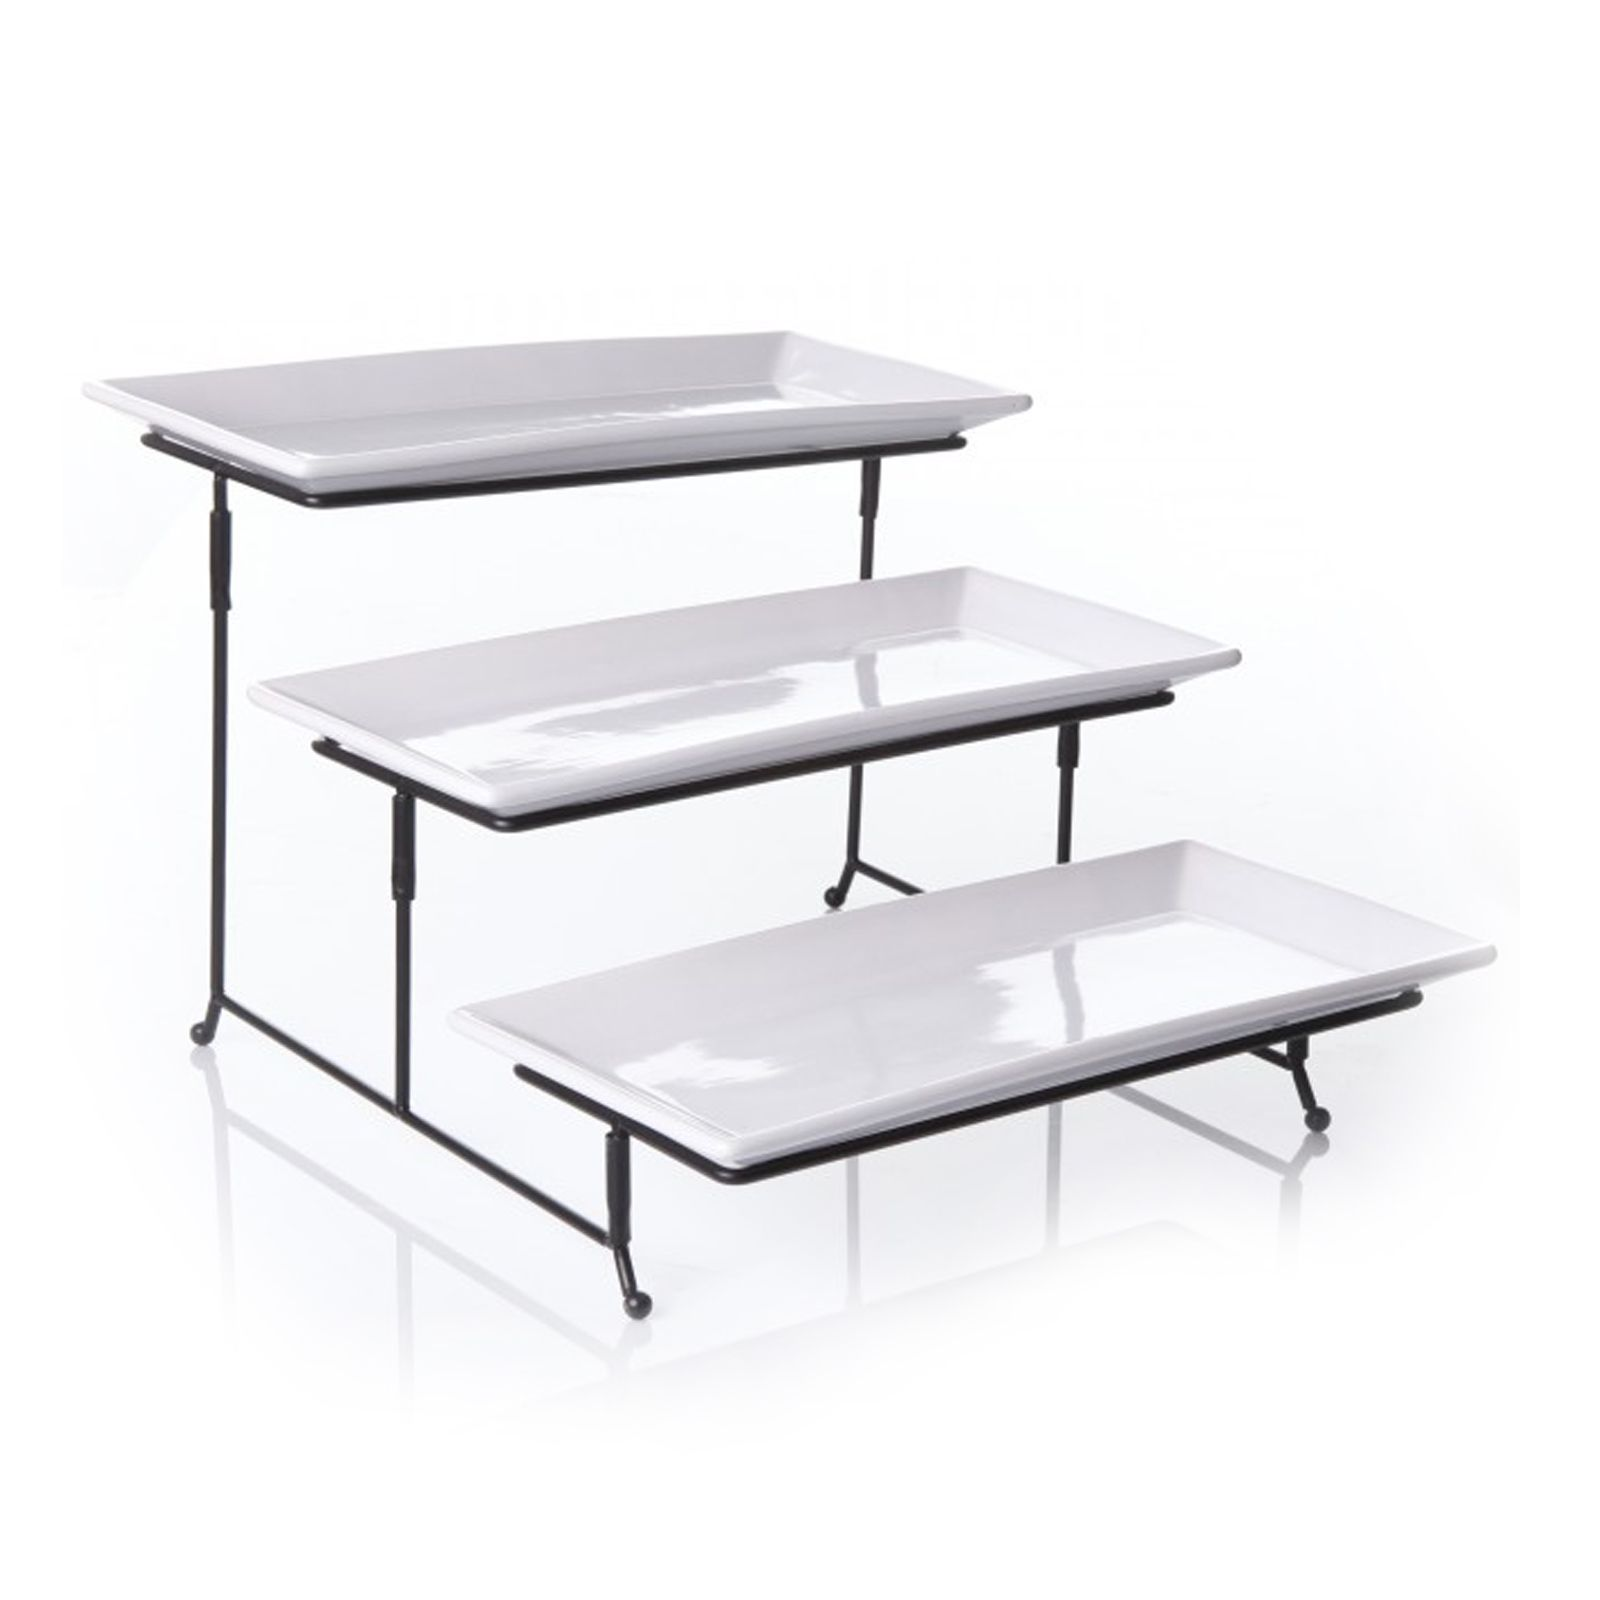 Gibson Gibson Gracious Dining 3 Tier Plate Set With Metal Stand Cake Tray Cake Stand Ceramic Tiered Serving Stand